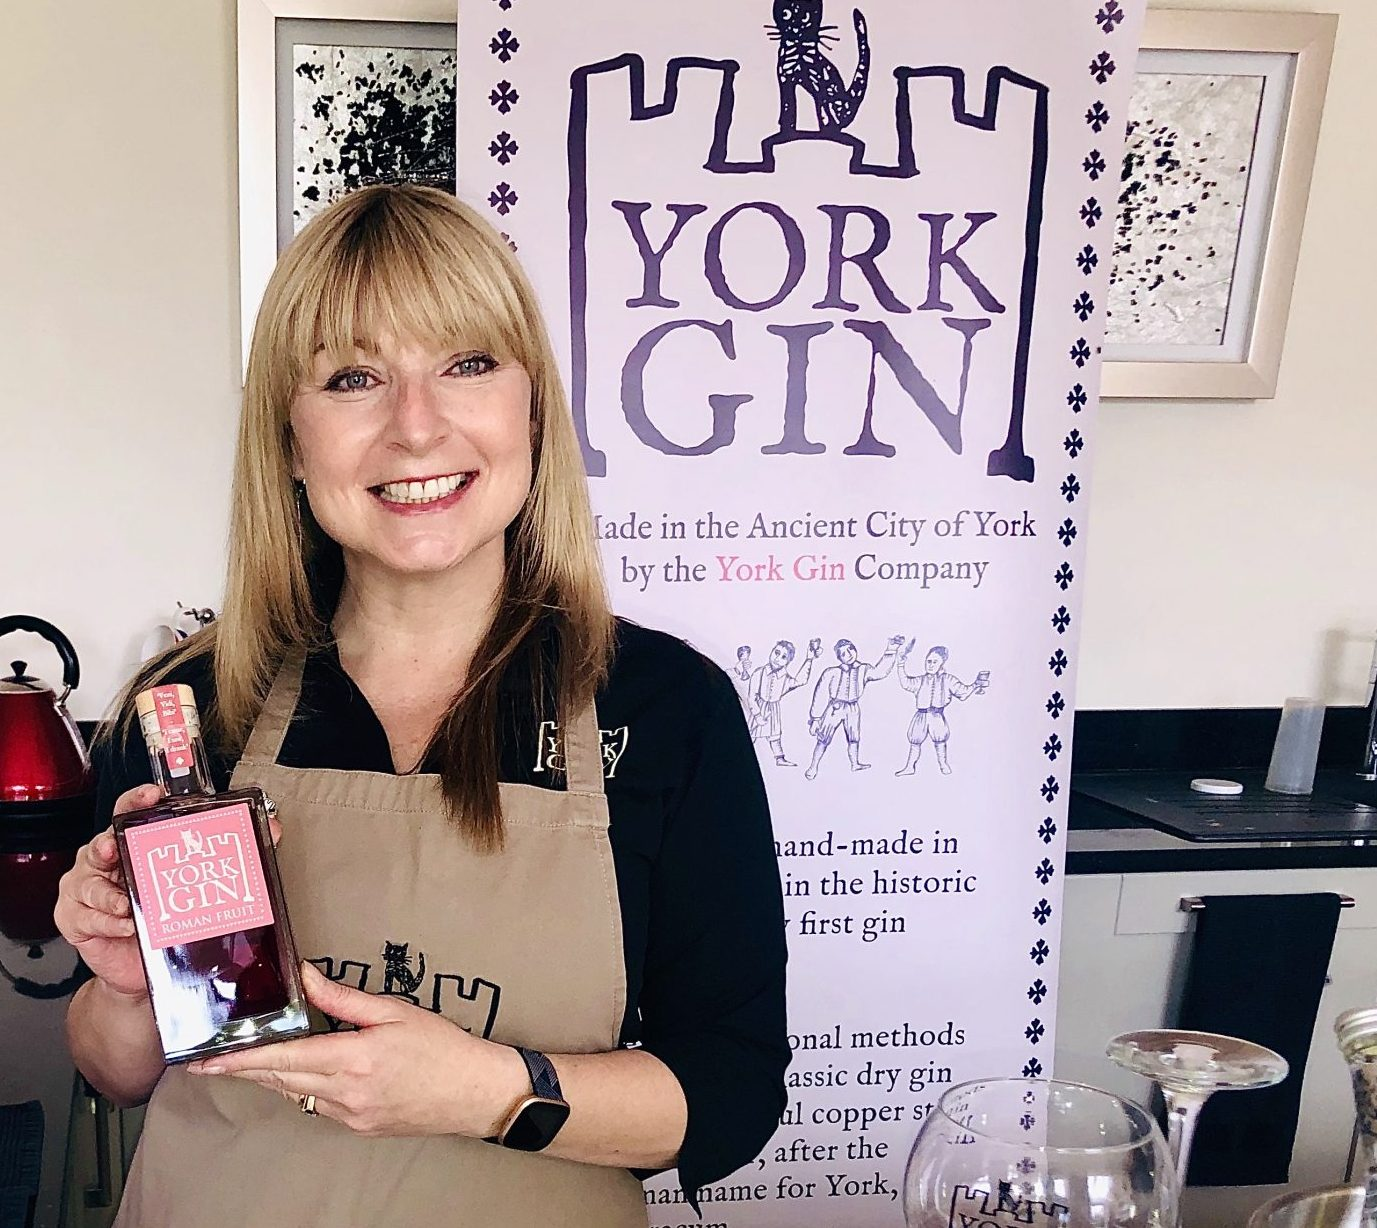 York Friday Night Gin Event